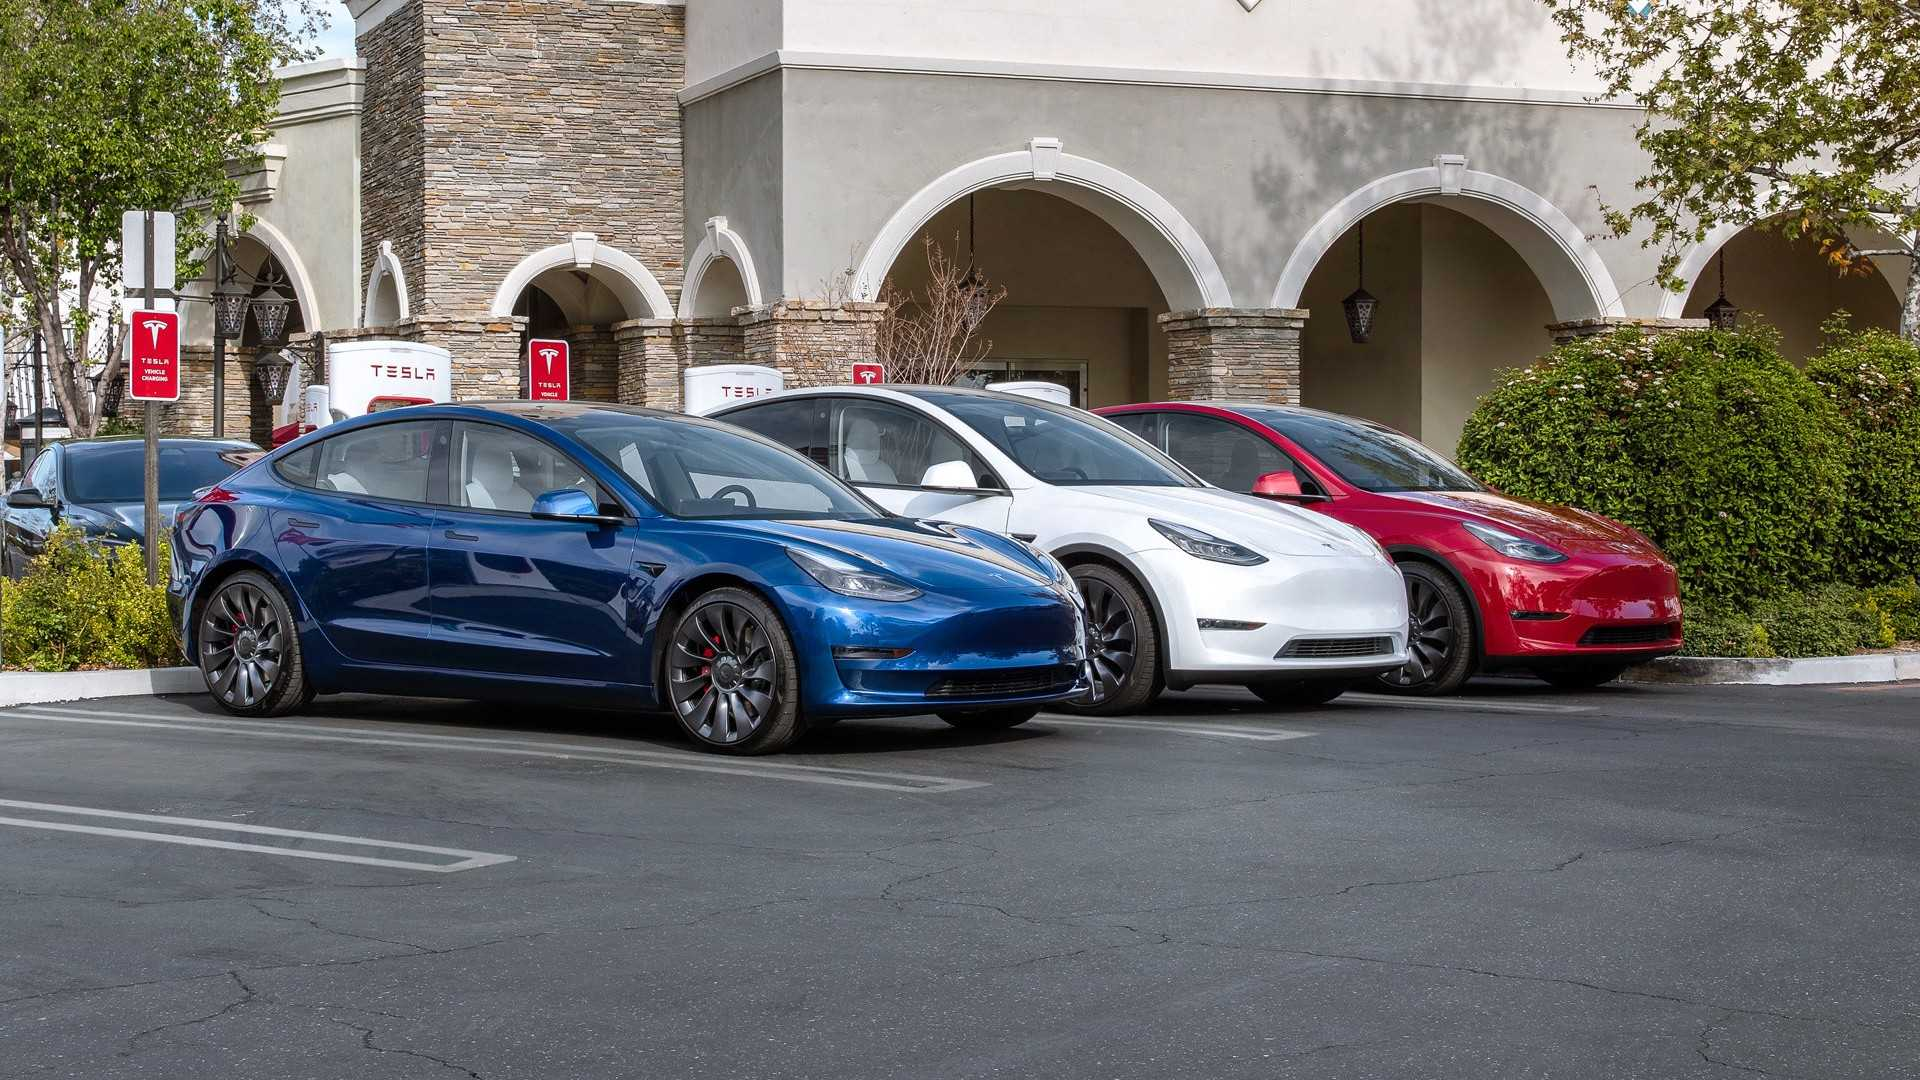 EV Rental Company Dropping All EVs Aside From Tesla's Vehicles